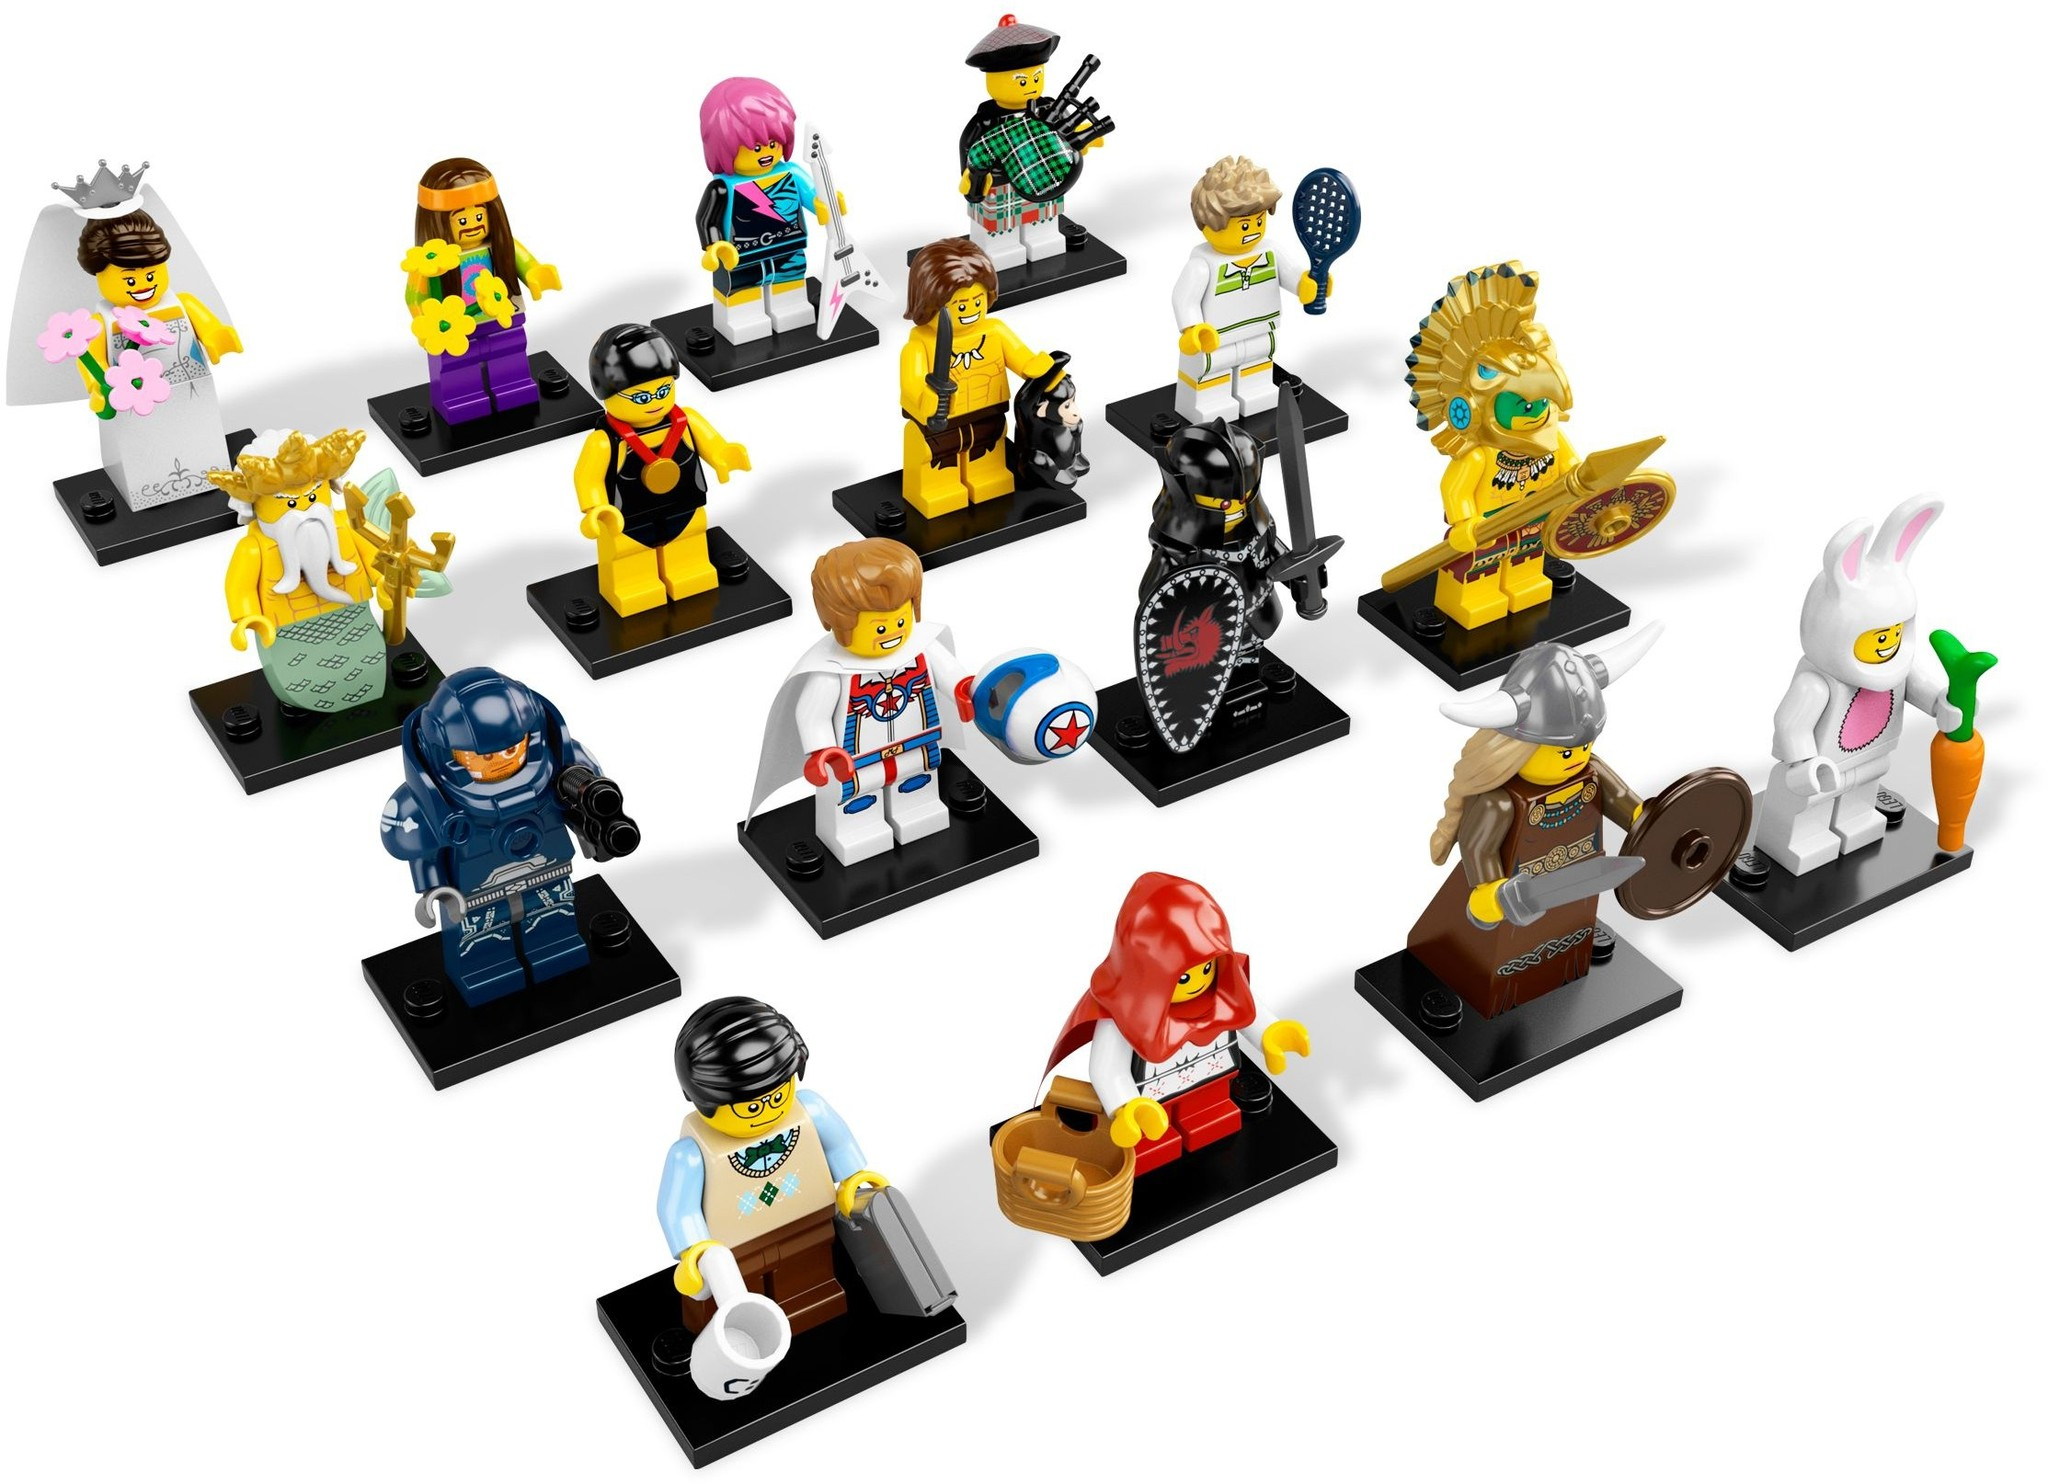 LEGO 8831 - LEGO Minifigures Series 7 Complete Full Set (16 pcs) MISP